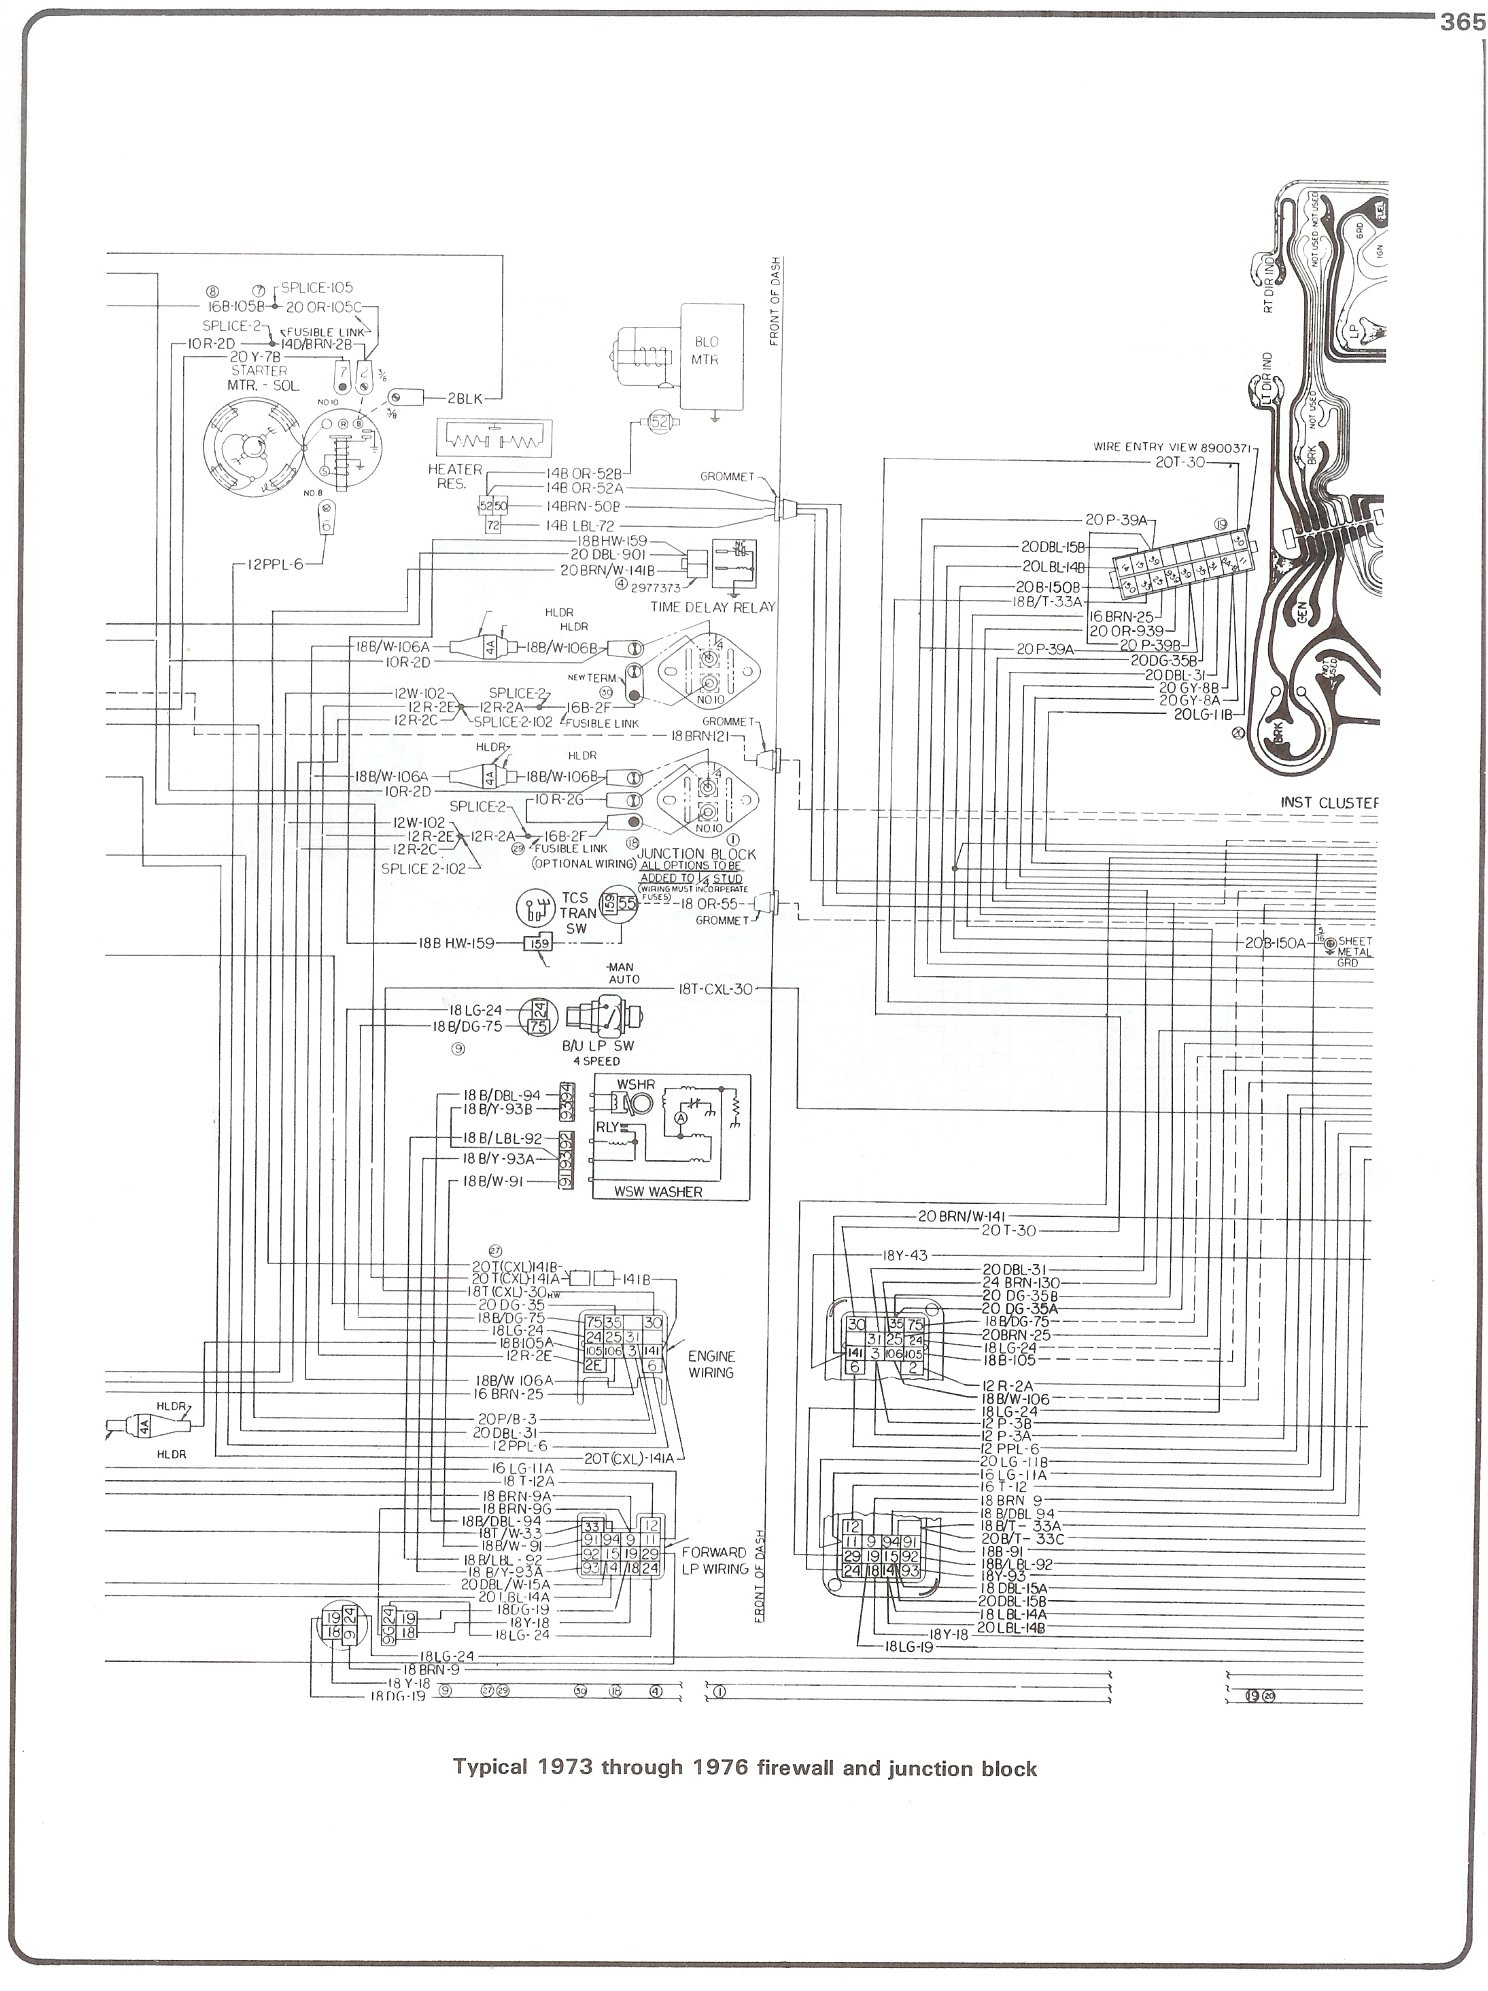 complete 73 87 wiring diagrams rh forum 73 87chevytrucks com 1970 GMC Truck Wiring Diagram 1979 gmc sierra grande wiring diagram